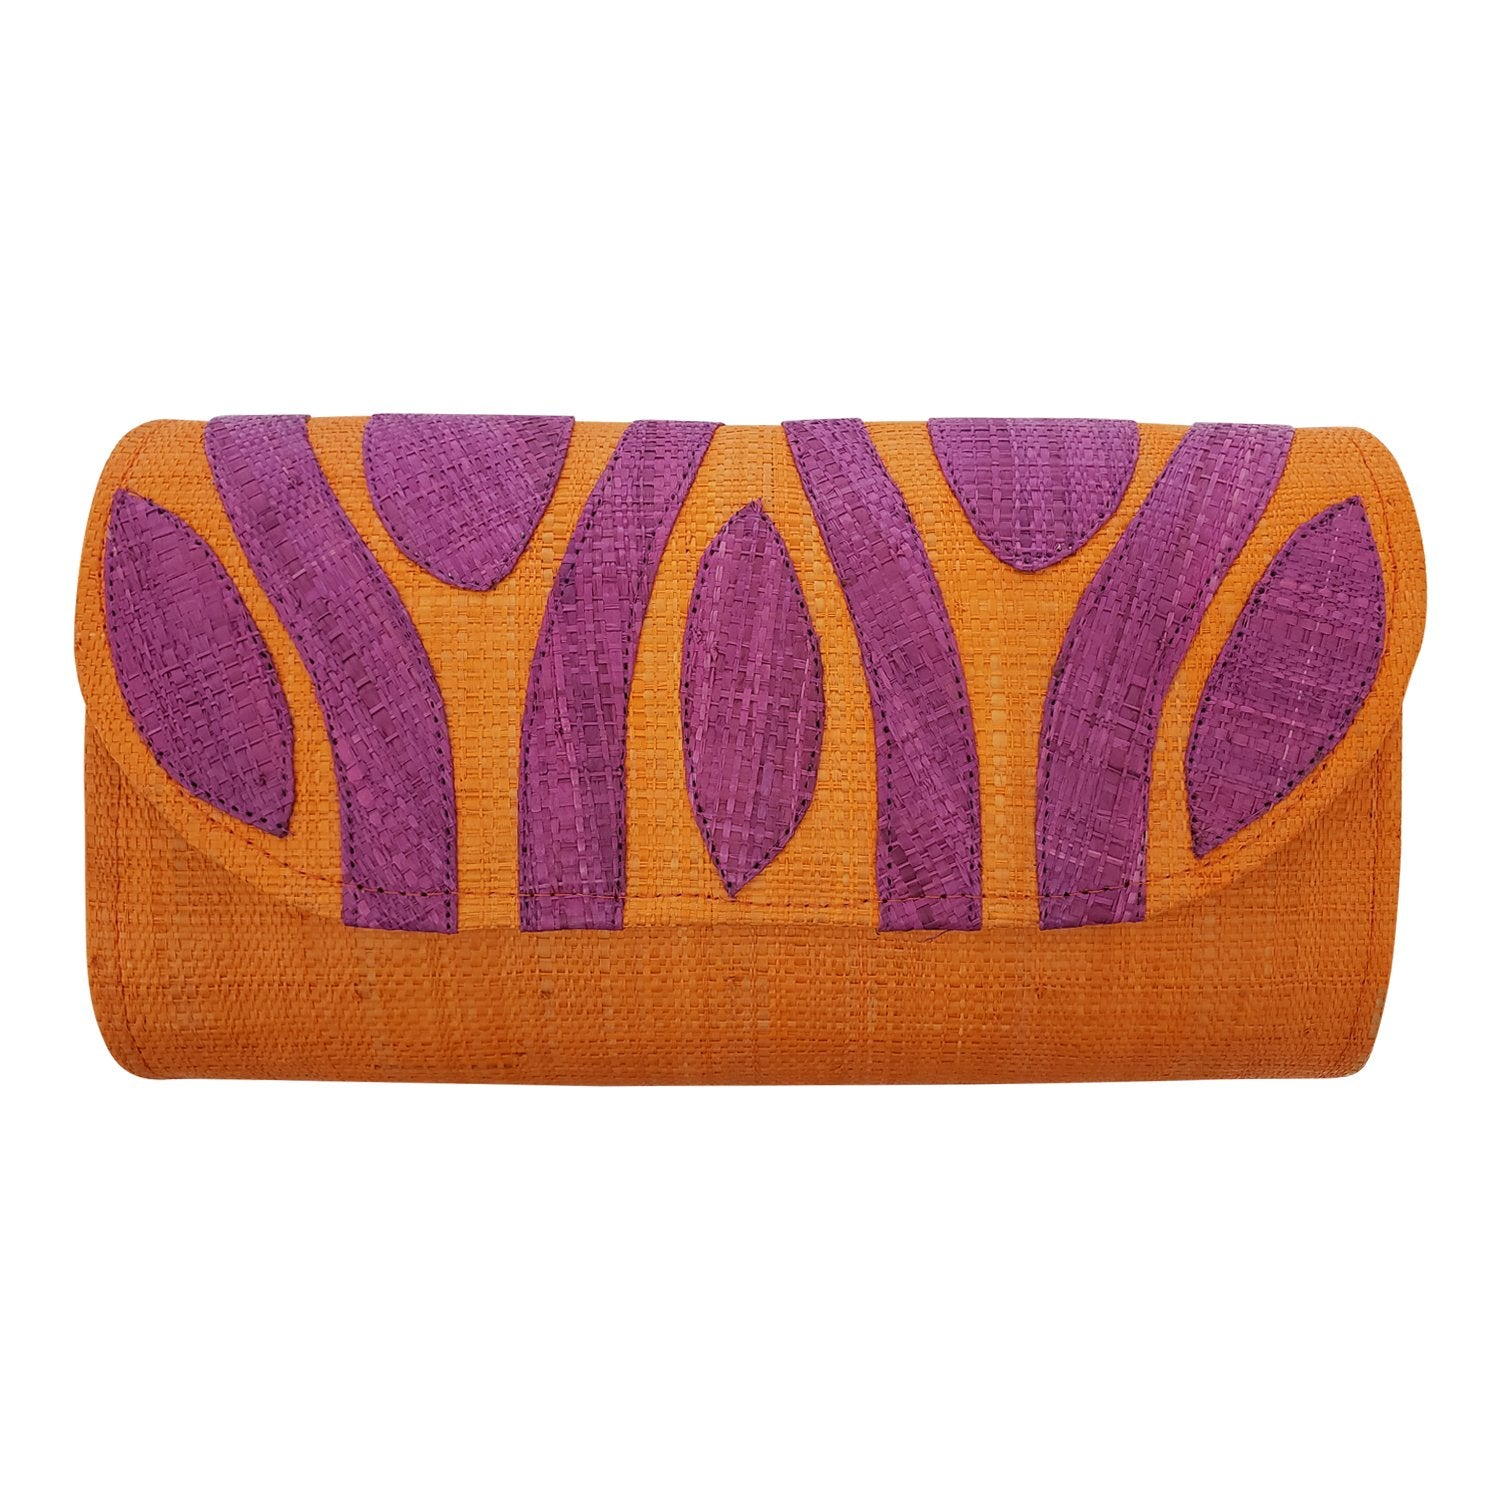 Authentic Handwoven Orange Madagascar Raffia Clutch with Purple Accents